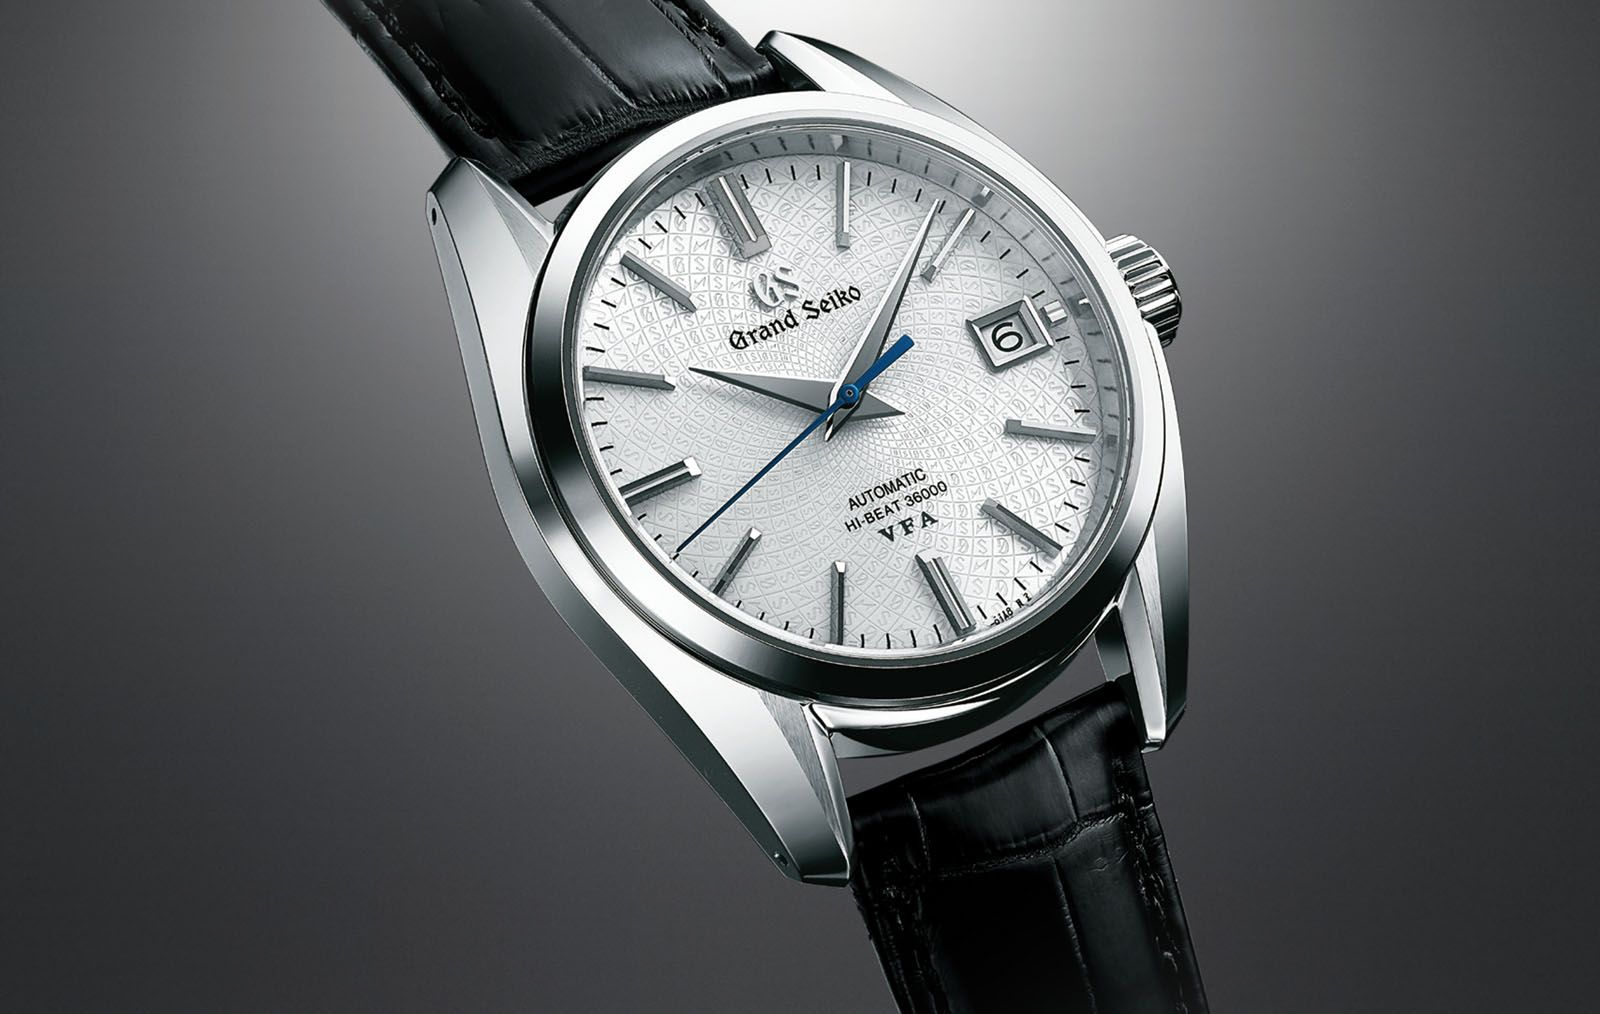 The Grand Seiko Hi-Beat 36000 VFA (SBGH265J) is a combination of superior technical prowess and polished aesthetics